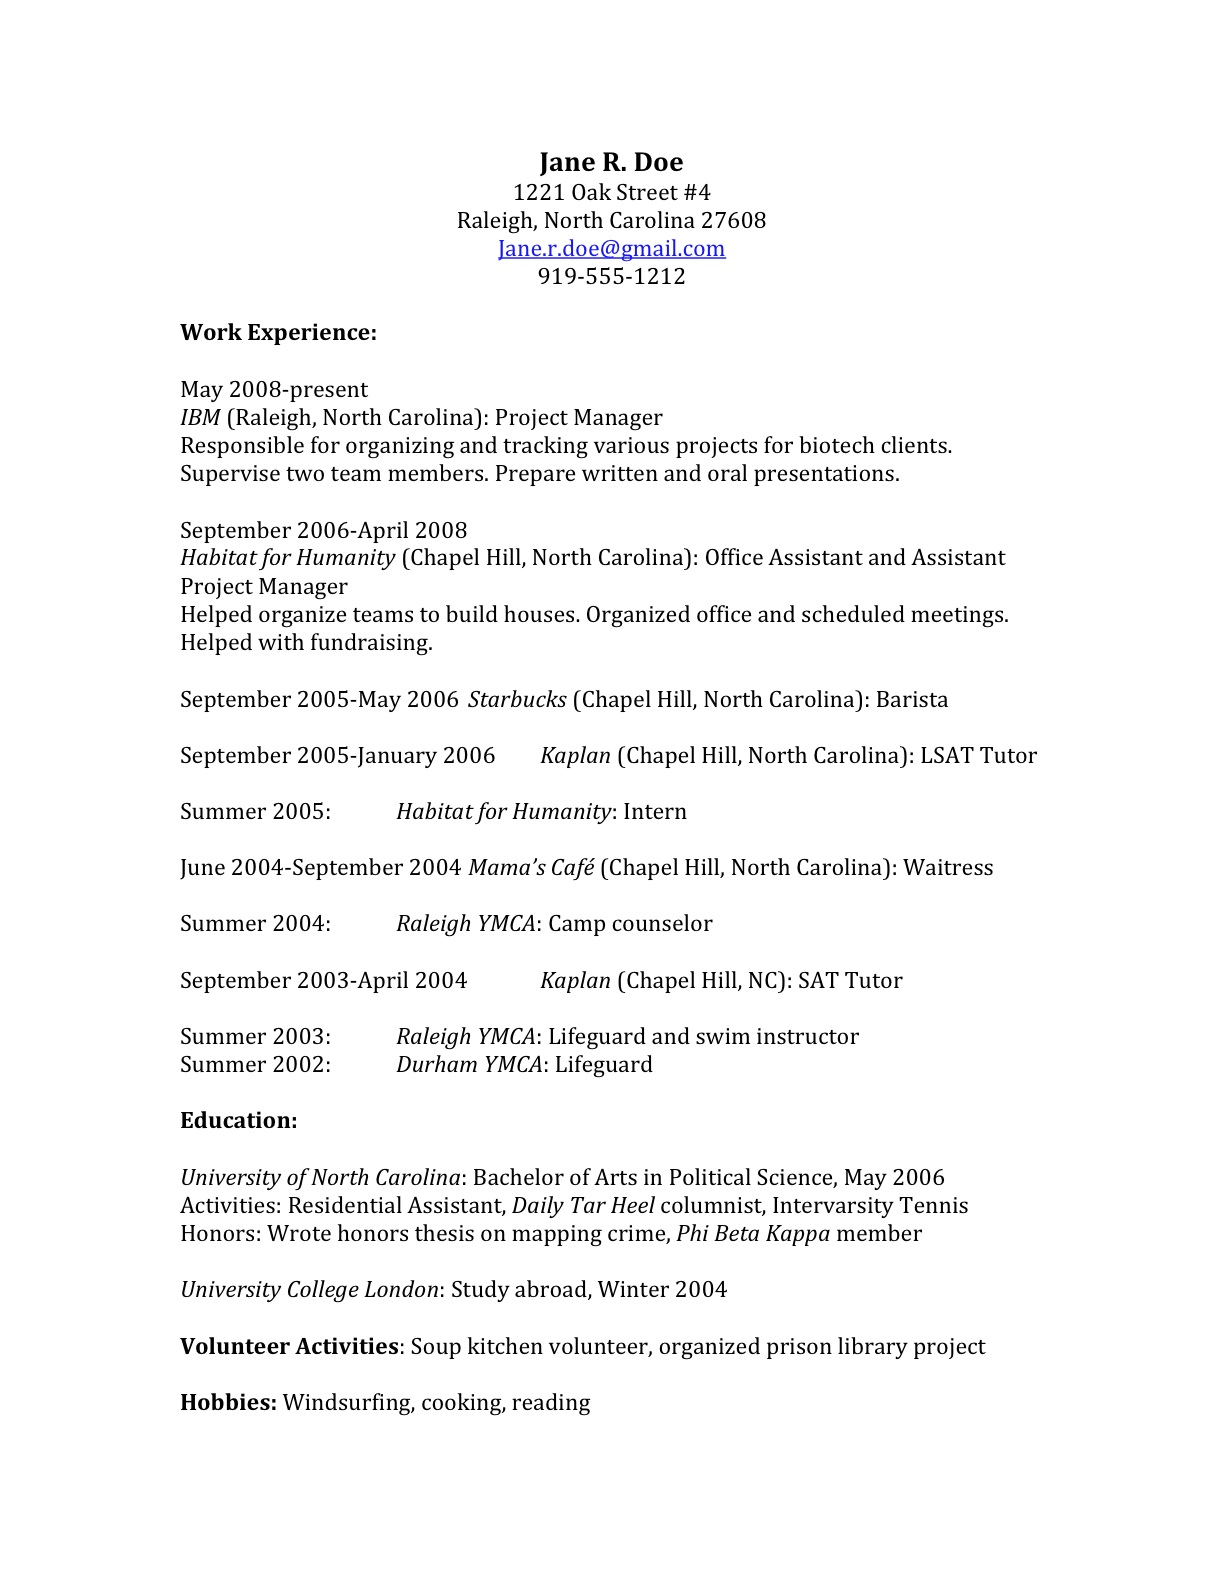 Jane Doeu0027s Starting Resume  Legal Resumes